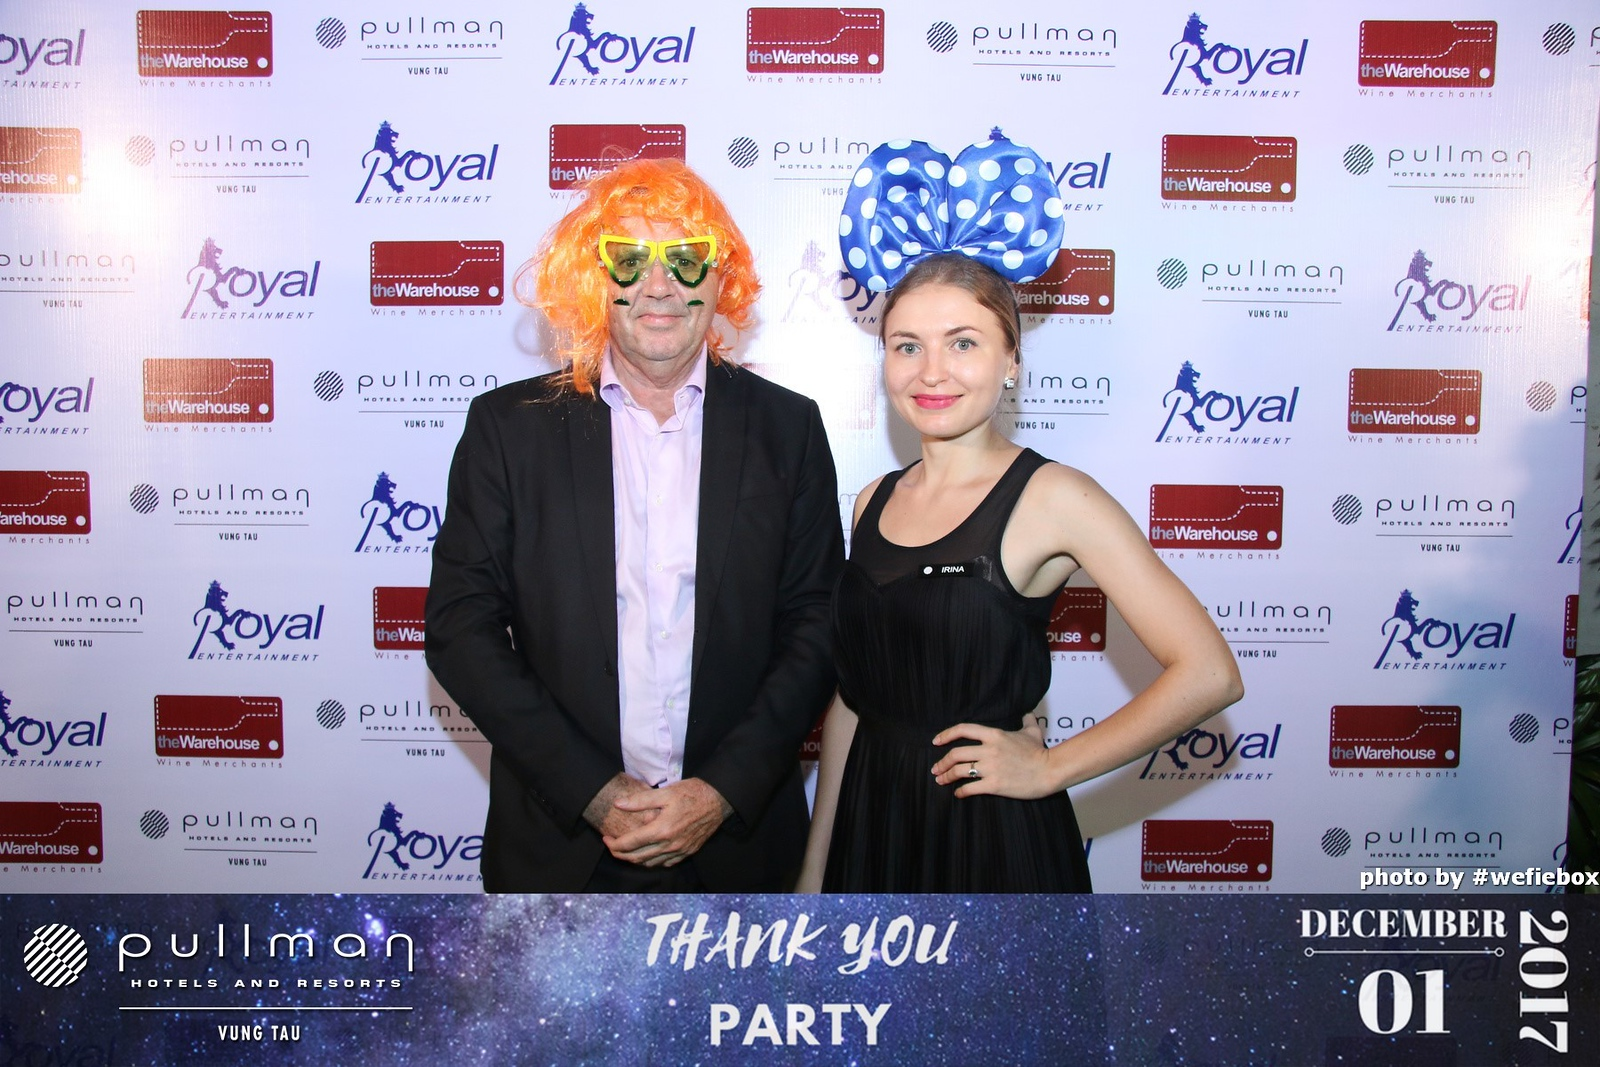 Pullman-Vung-Tau-Thank-You-Party-2017-photobooth-instant-print-chup-anh-lay-lien-su-kien-tiec-cuoi-045